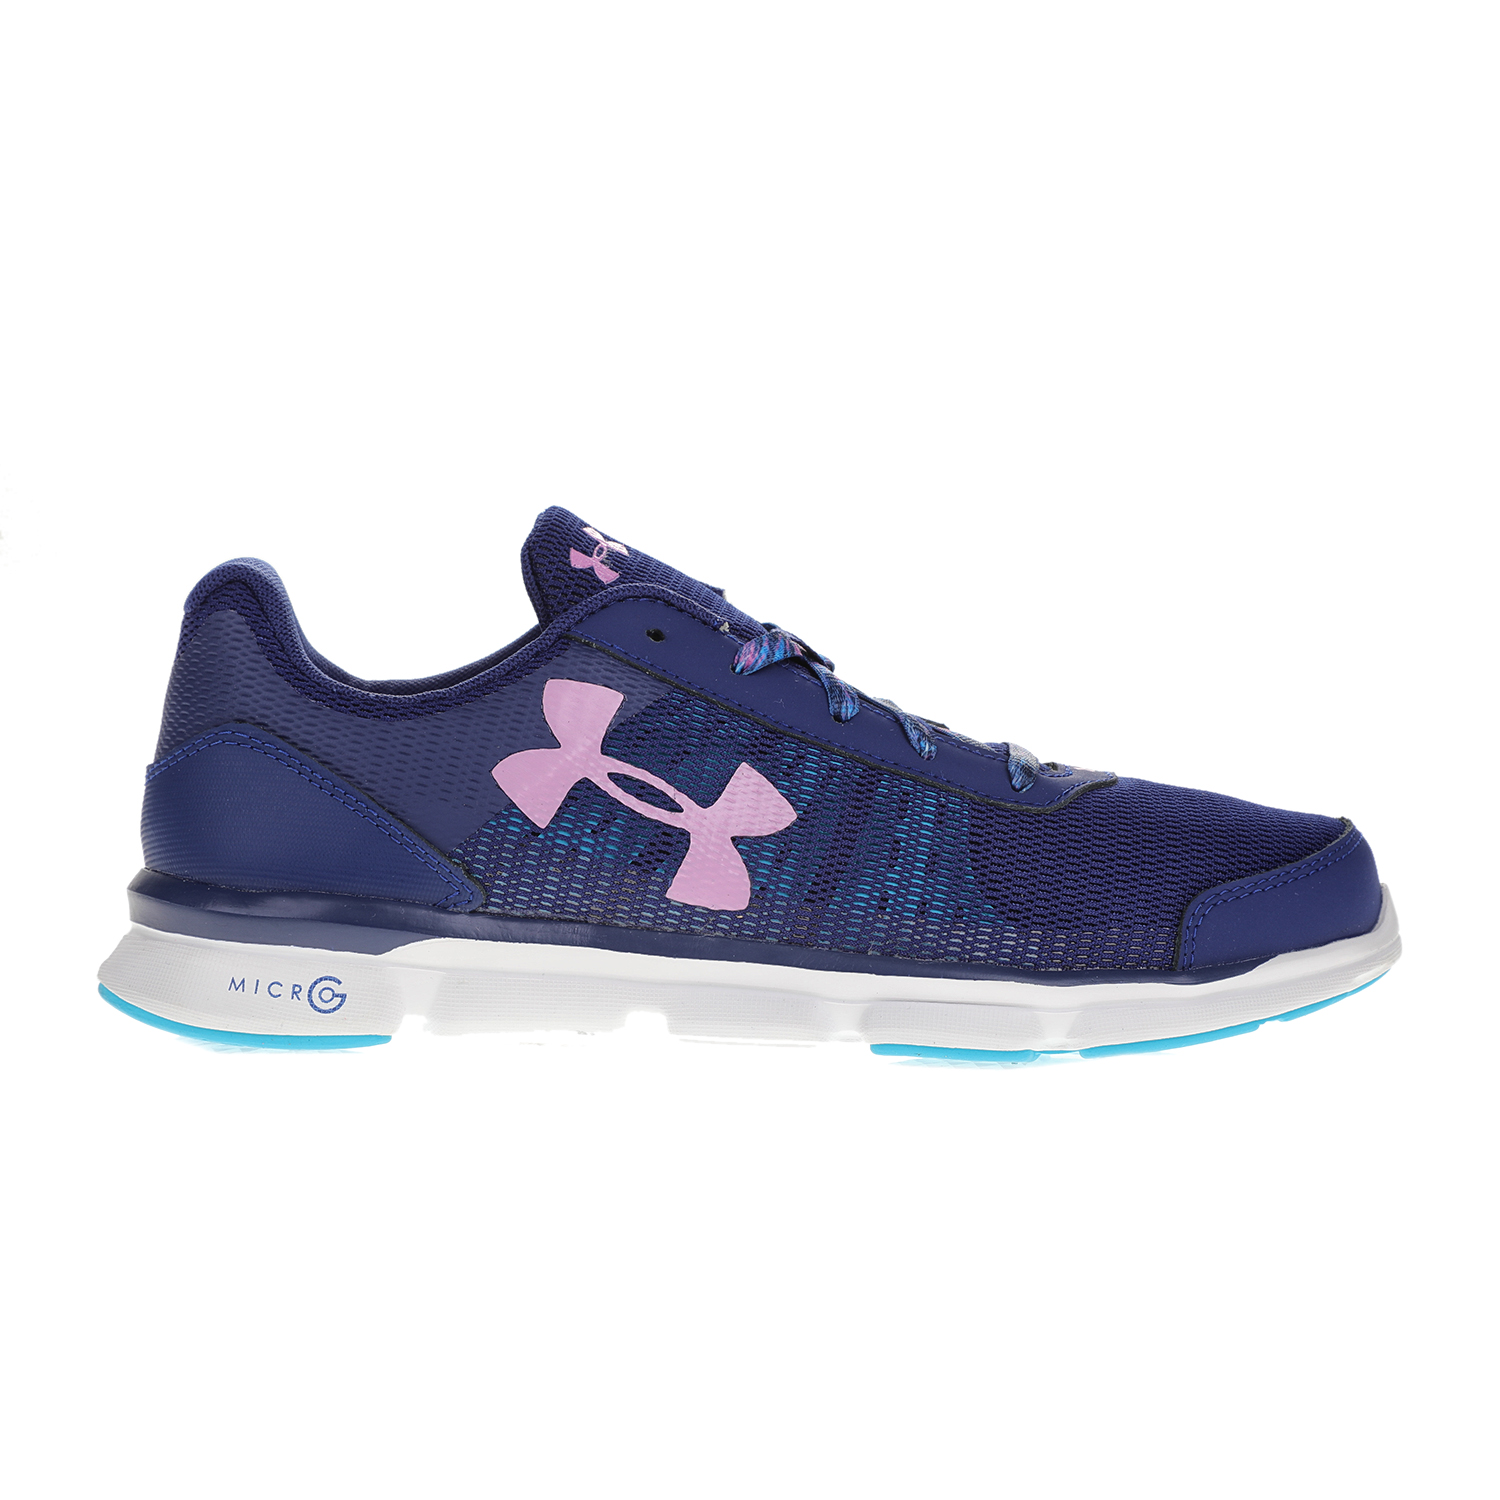 80439d2caa9 UNDER ARMOUR – Παιδικά αθλητικά παπούτσια UNDER ARMOUR GGS MICRO G SPEED S  μπλε